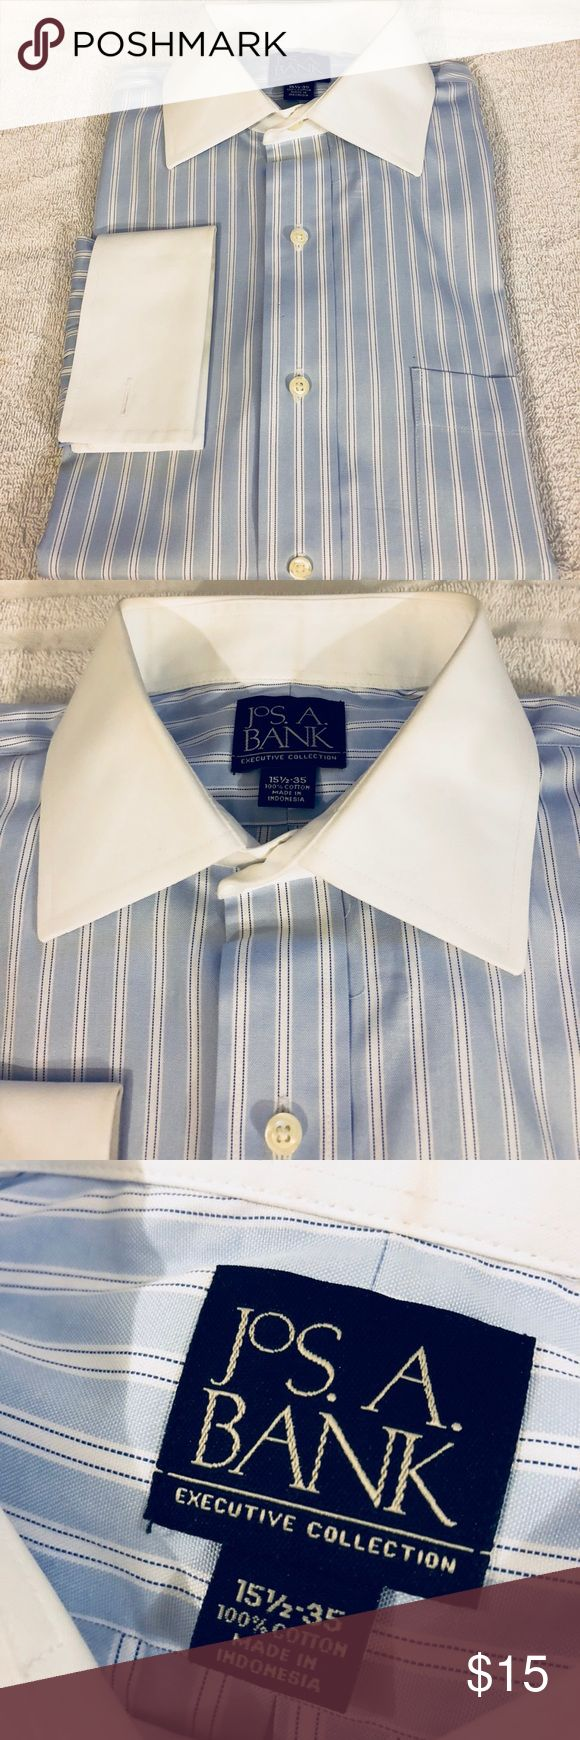 Jos A Bank Blue Stripe French Cuff Shirt 15.5-35 Jos A Bank Blue with White Stripe White Collar French Cuff Dress Shirt size 15.5-35! Like new!  Please make reasonable offers and bundle! Ask questions :) Jos. A. Bank Shirts Dress Shirts